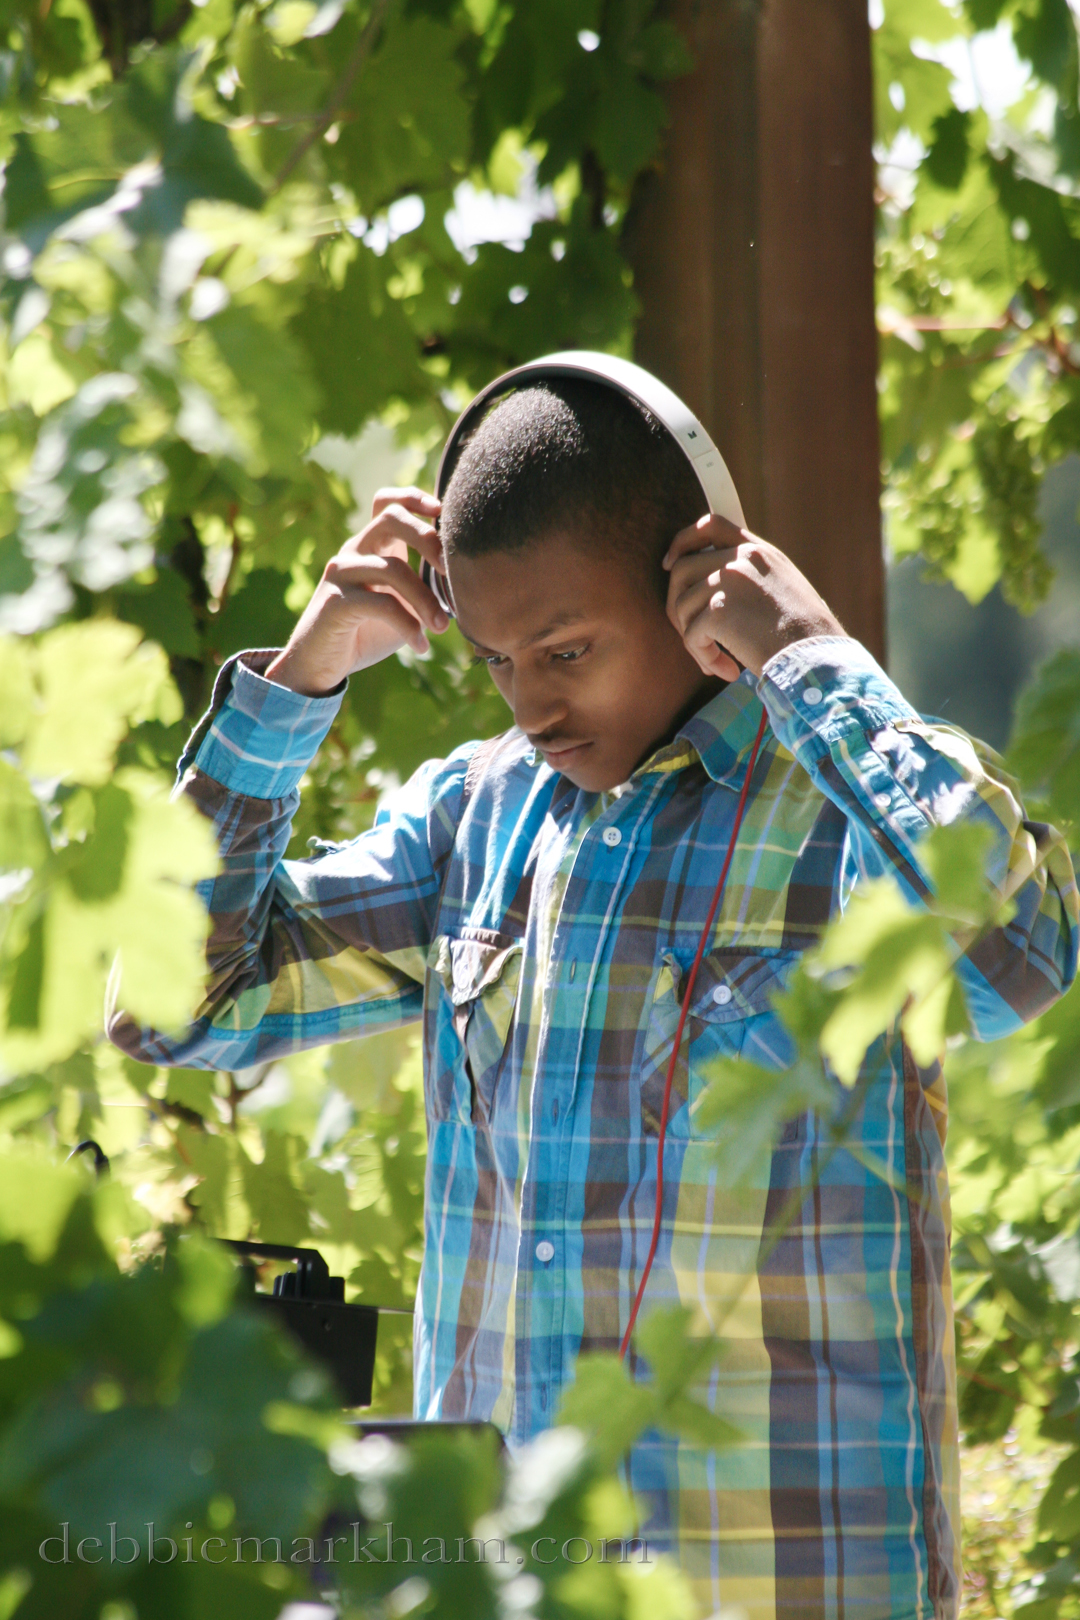 Cambria Photographer Debbie Markham-Professional Wedding Photos at Castoro Winery - DJ at outdoor reception in vineyard